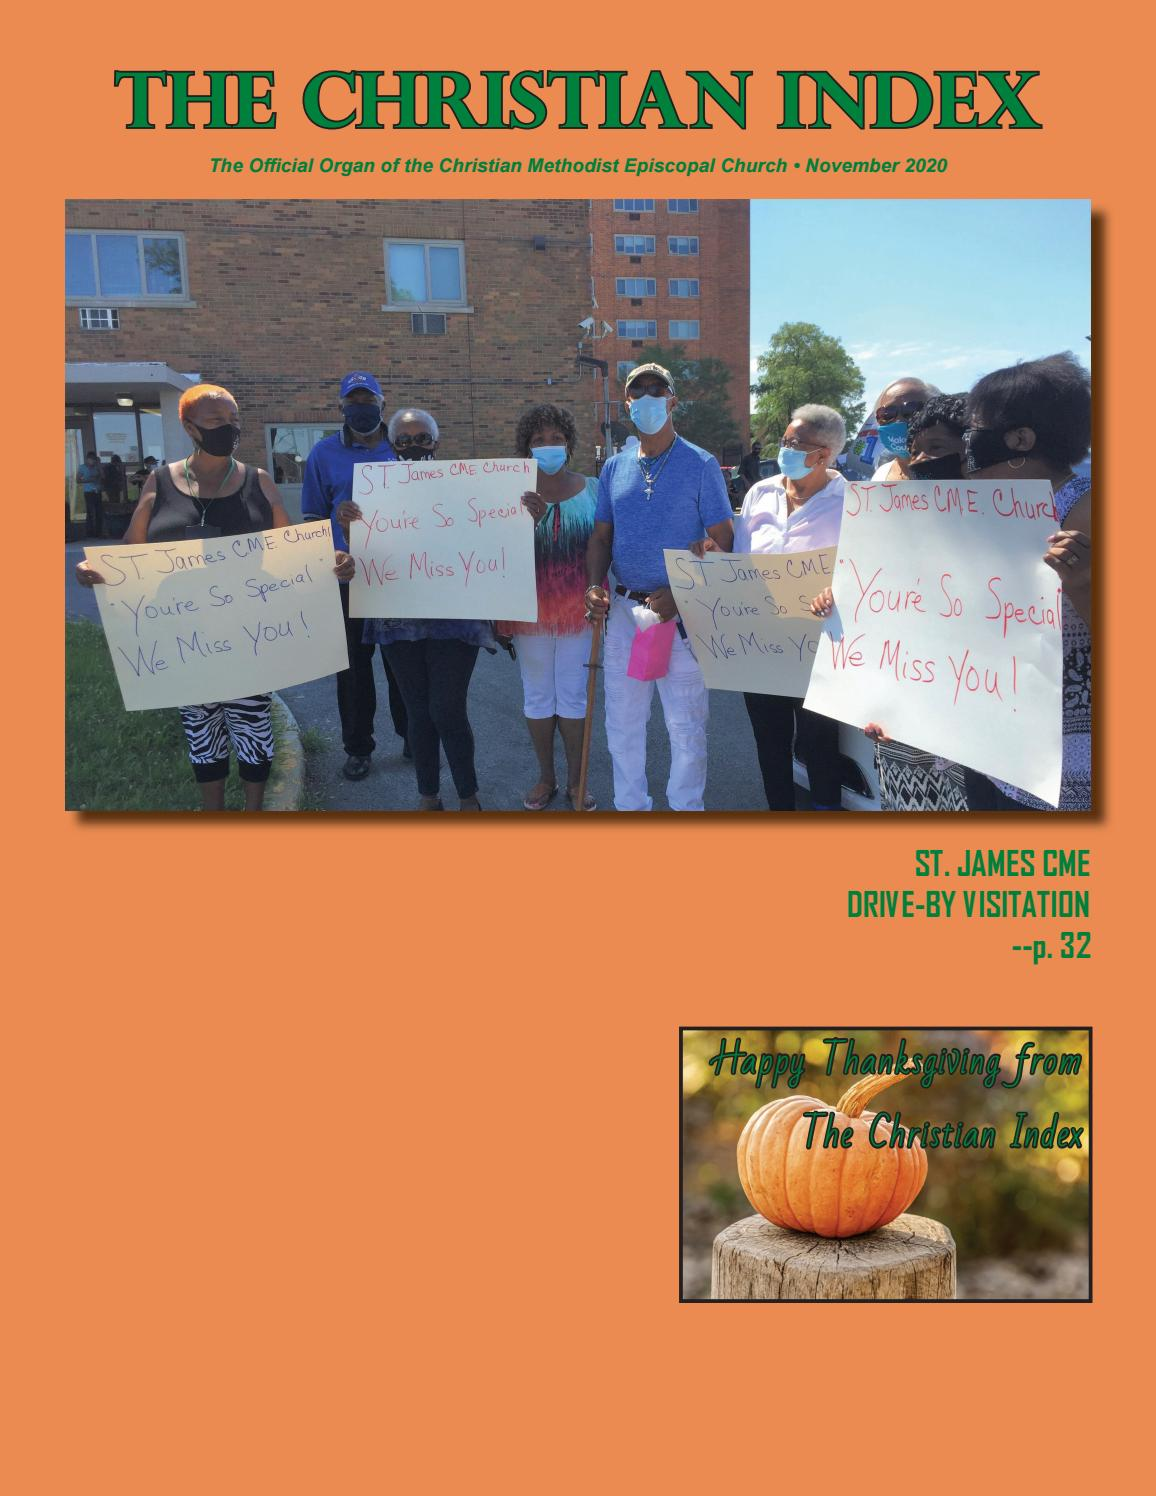 The Christian Index November 2020 By Ore Spragin Ministries The Christian Index Issuu